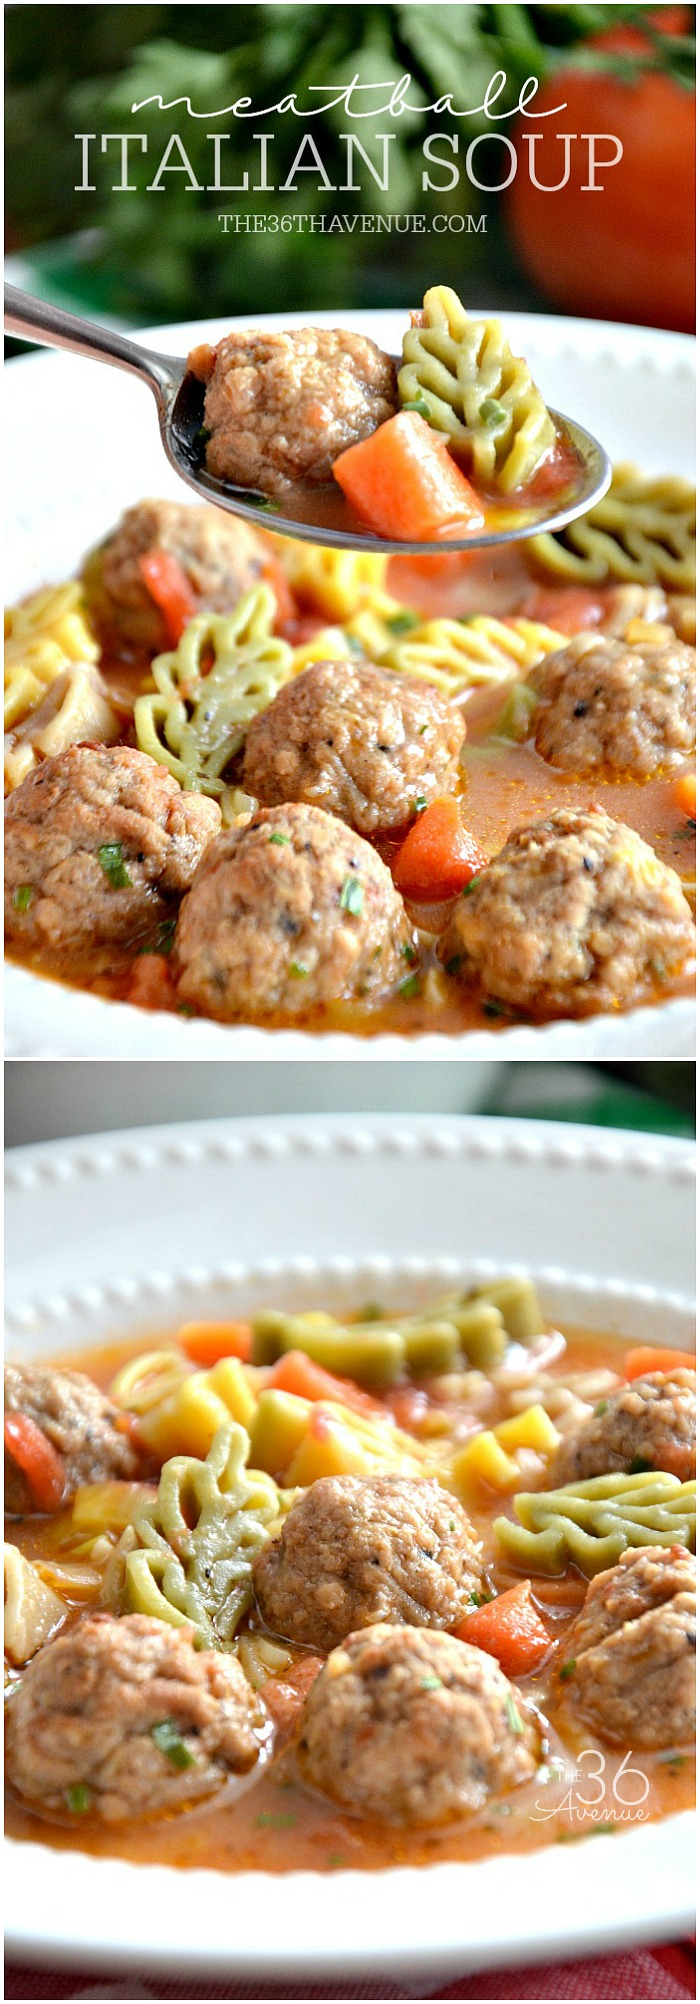 Meatball Italian Soup Recipe - This delicious One Pot Soup is super easy to make and ready in 30 minutes or less! I love easy soup recipes! PIN IT NOW and make it later!